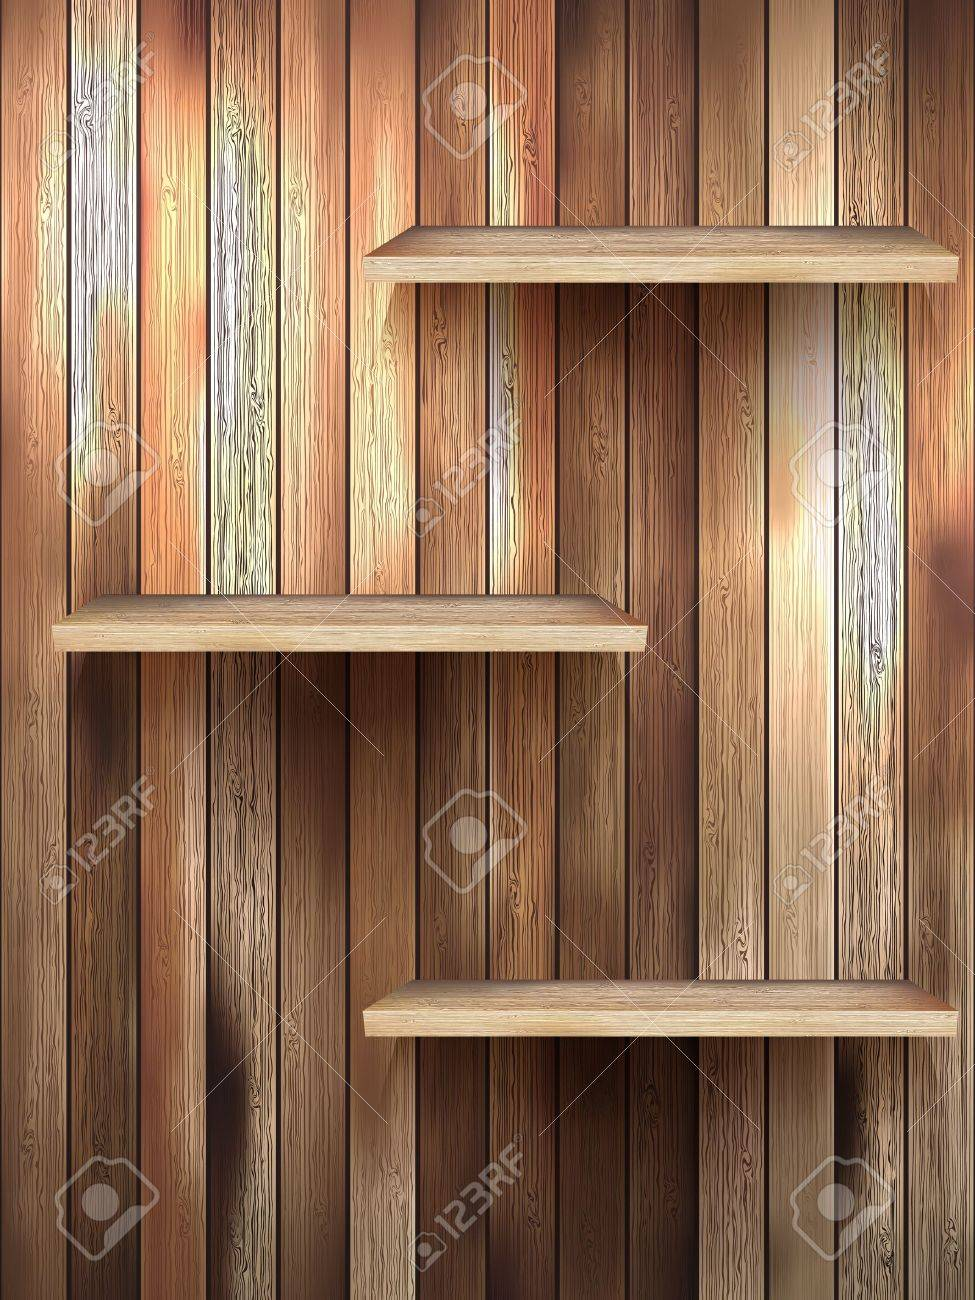 Regal Holz Stock Photo